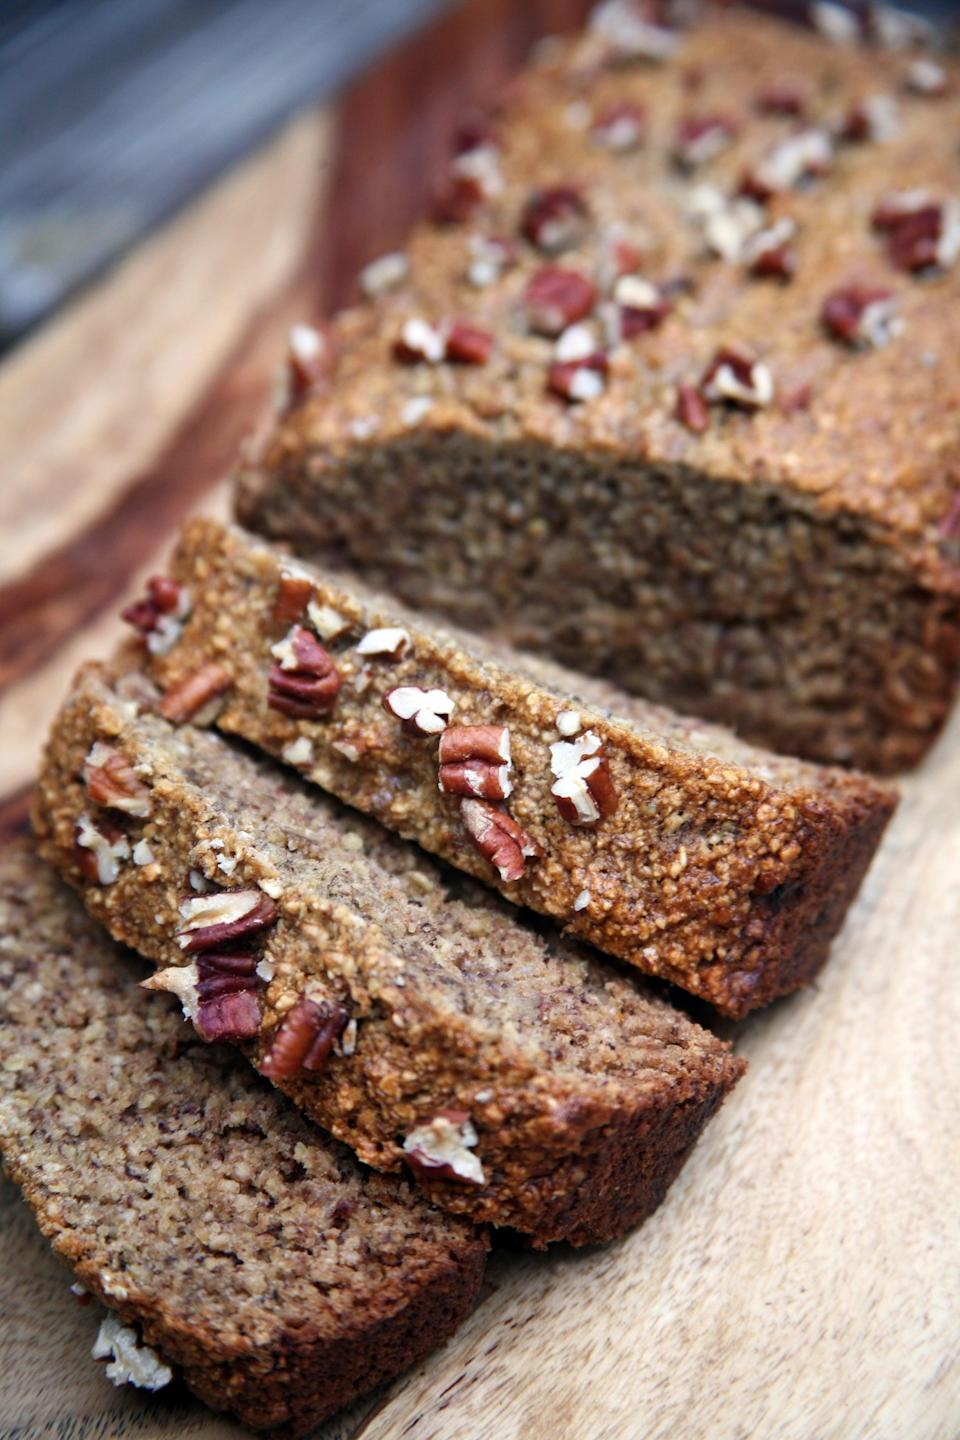 "<p>This moist and filling banana bread is just begging to be smeared with peanut butter! </p> <p><strong>Calories:</strong> 147 per slice<br> <strong>Protein:</strong> 7 grams</p> <p><strong>Get the recipe:</strong> <a href=""https://www.popsugar.com/fitness/Gluten-Free-Banana-Bread-42294709"" class=""link rapid-noclick-resp"" rel=""nofollow noopener"" target=""_blank"" data-ylk=""slk:vegan gluten-free banana bread"">vegan gluten-free banana bread</a></p>"